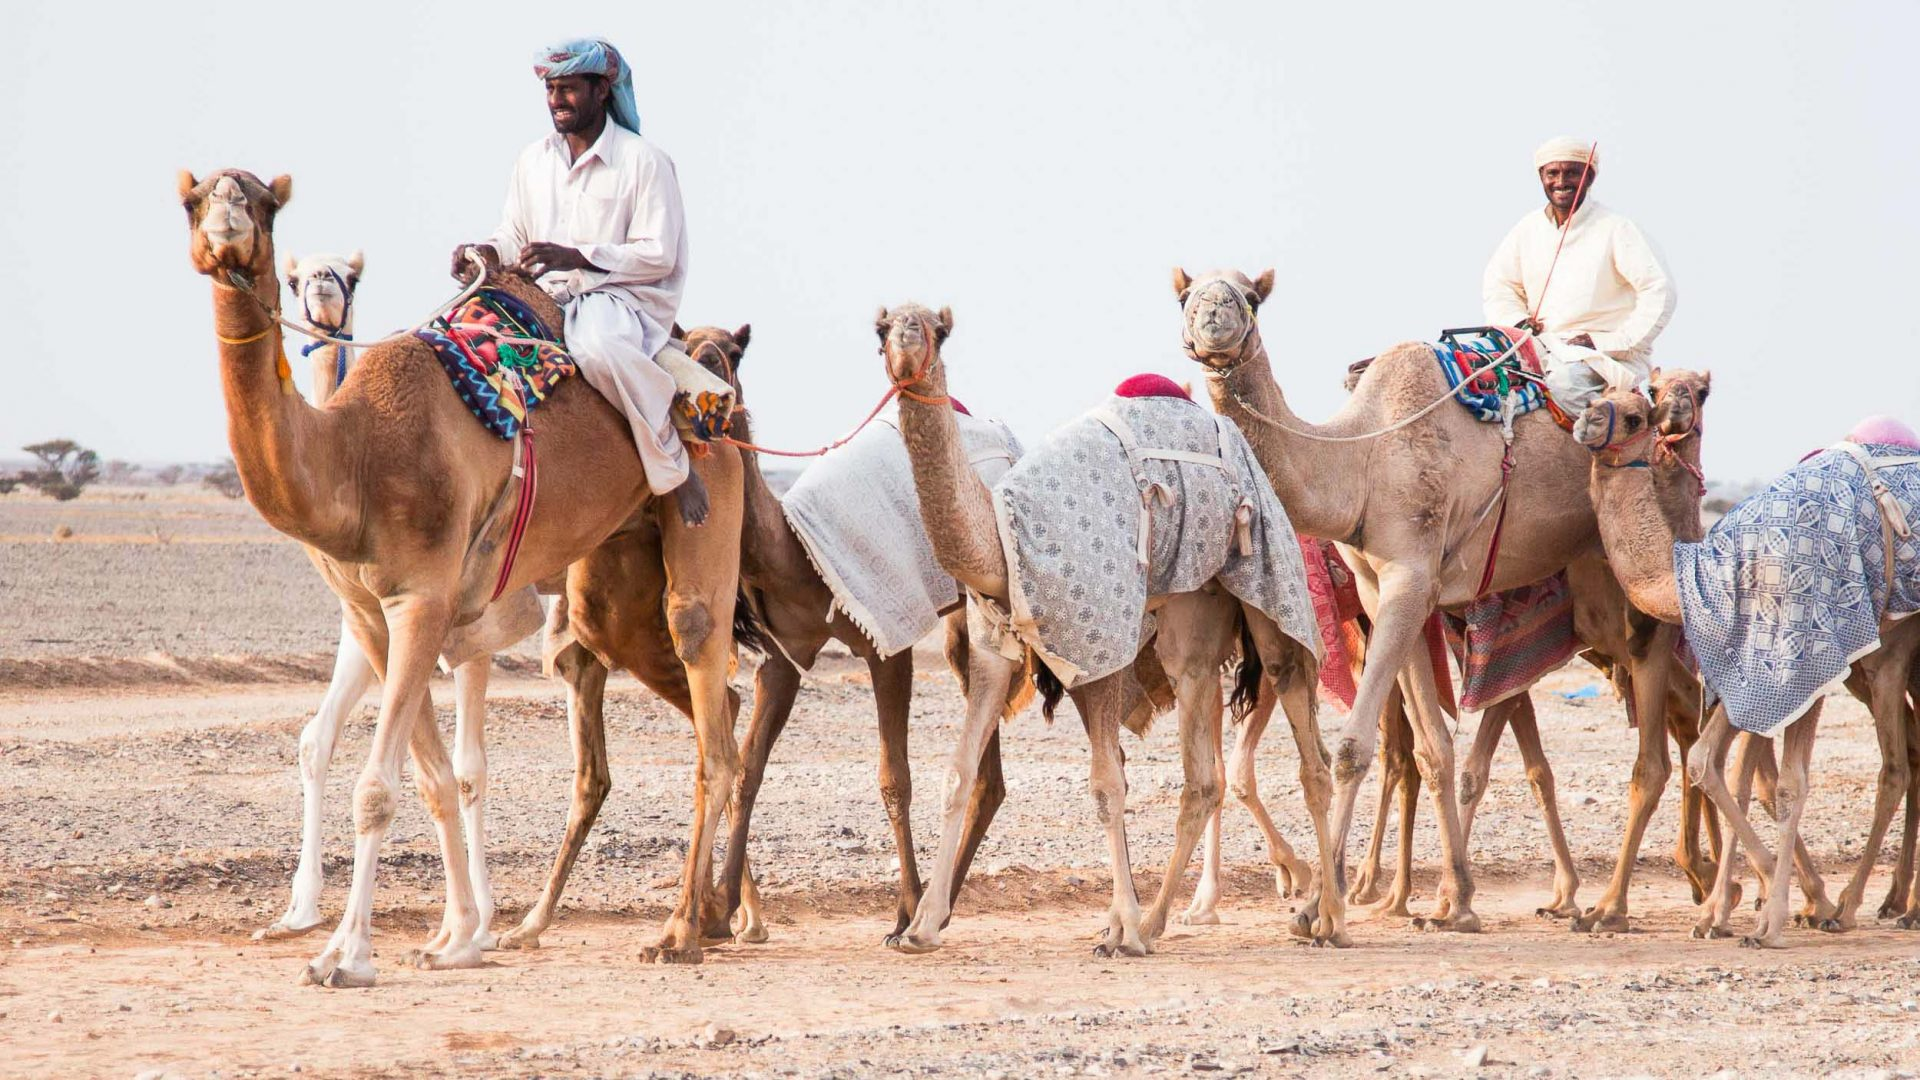 The ultimate travel companion? A beginner's guide to shopping for a camel